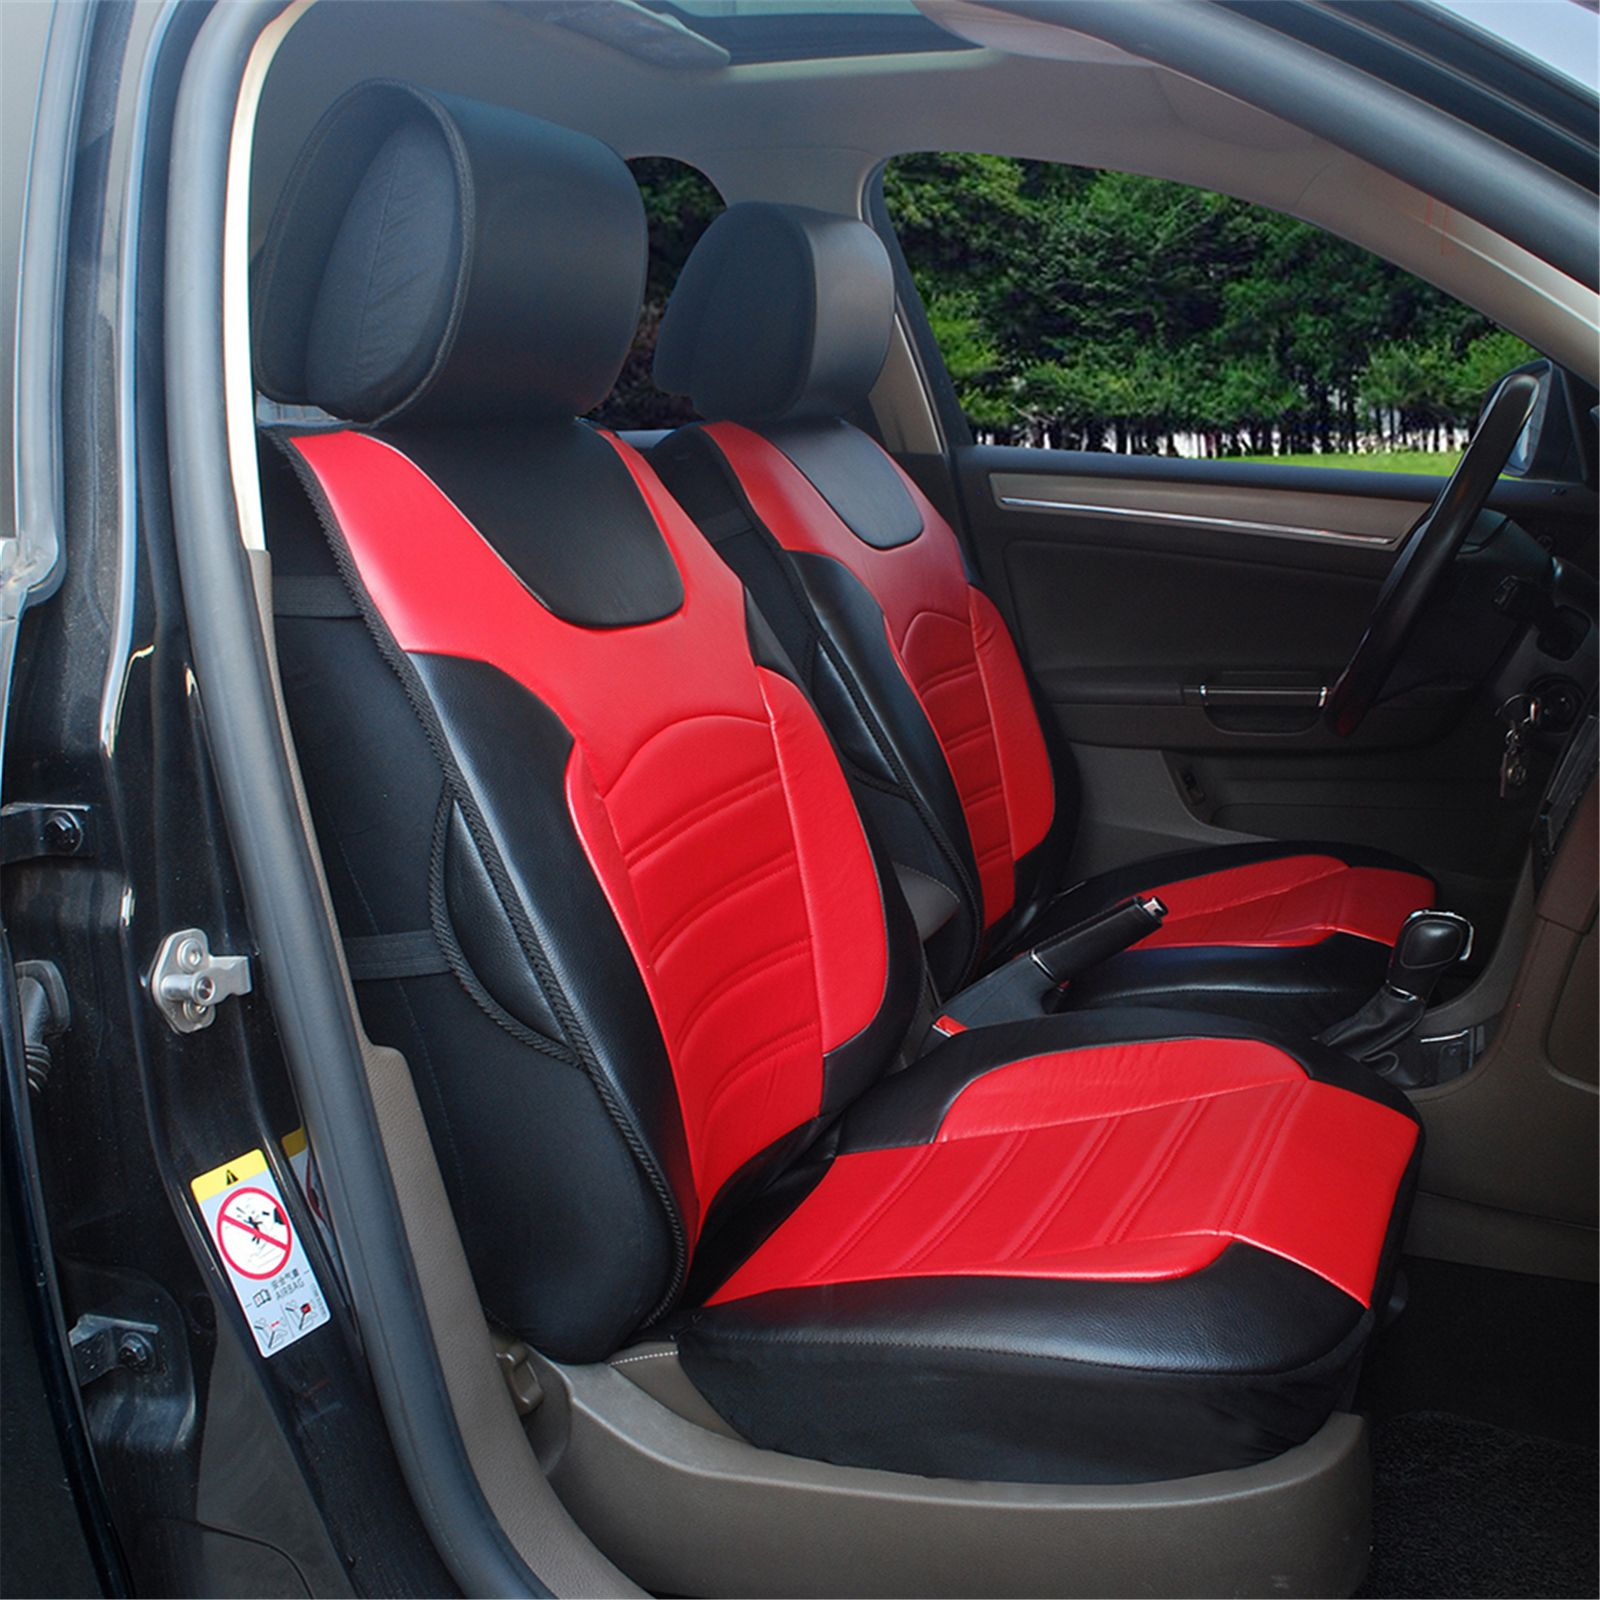 Visit Our Store Https Www Amazon Com S Ref Nb Sb Noss Url Me 3da2p0ng5i2f9grk Field Keywords 180208s Car Seats Leather Car Seat Covers Car Seat Cushion